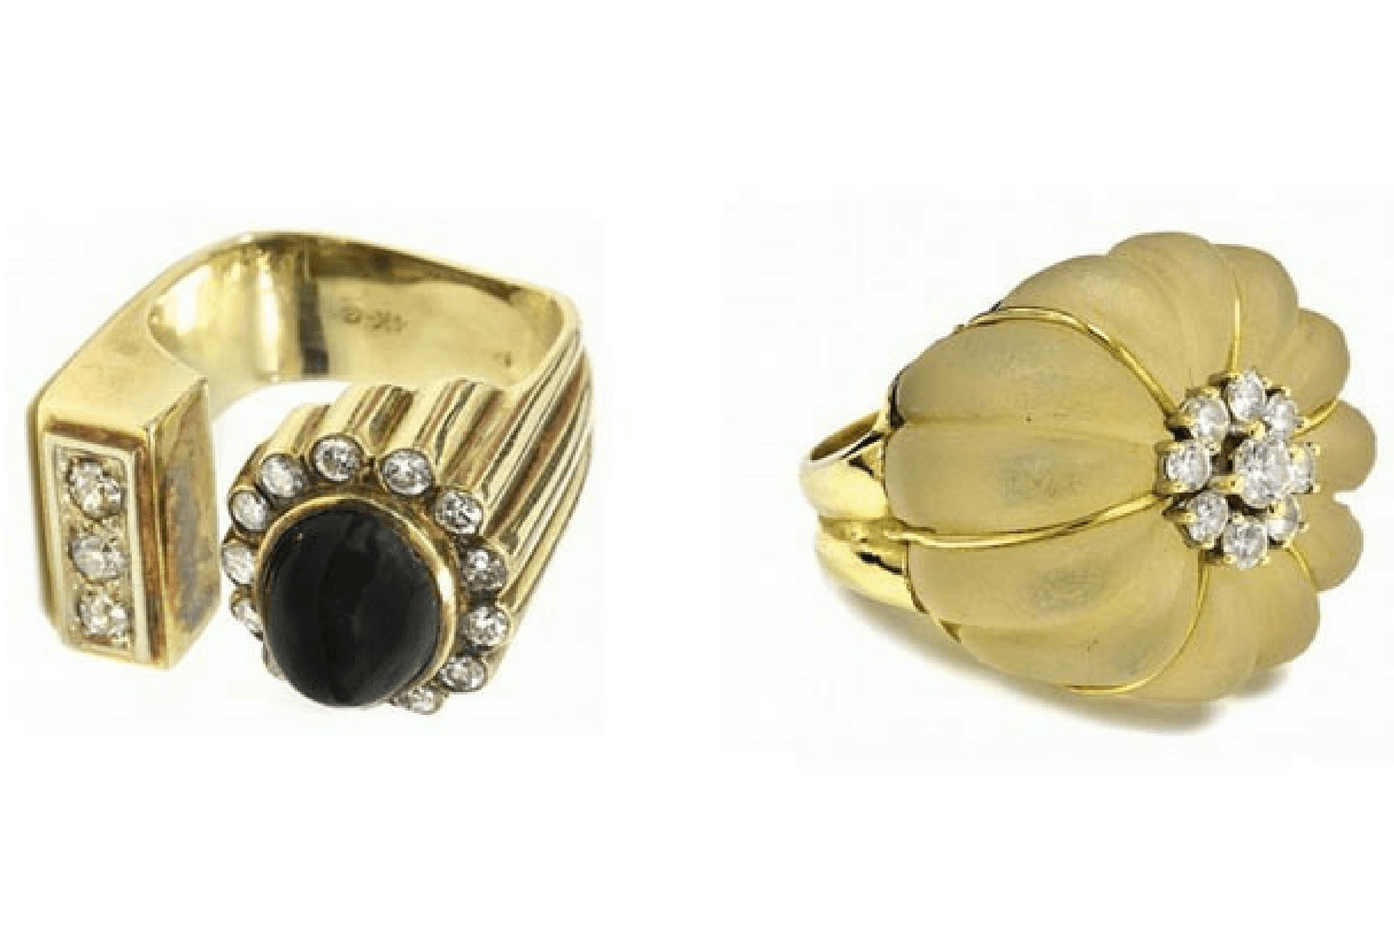 "Left – 1969/70 Elvis Presley's gold, diamond and black sapphire ring – The ""Number 10″ ring. Estimate $10,000 – $15,000. It sold for $12,000. Right -Gold, diamond and rock crystal quartz ring given by Presley's to his girlfriend Linda Thompson sold for $7,000."